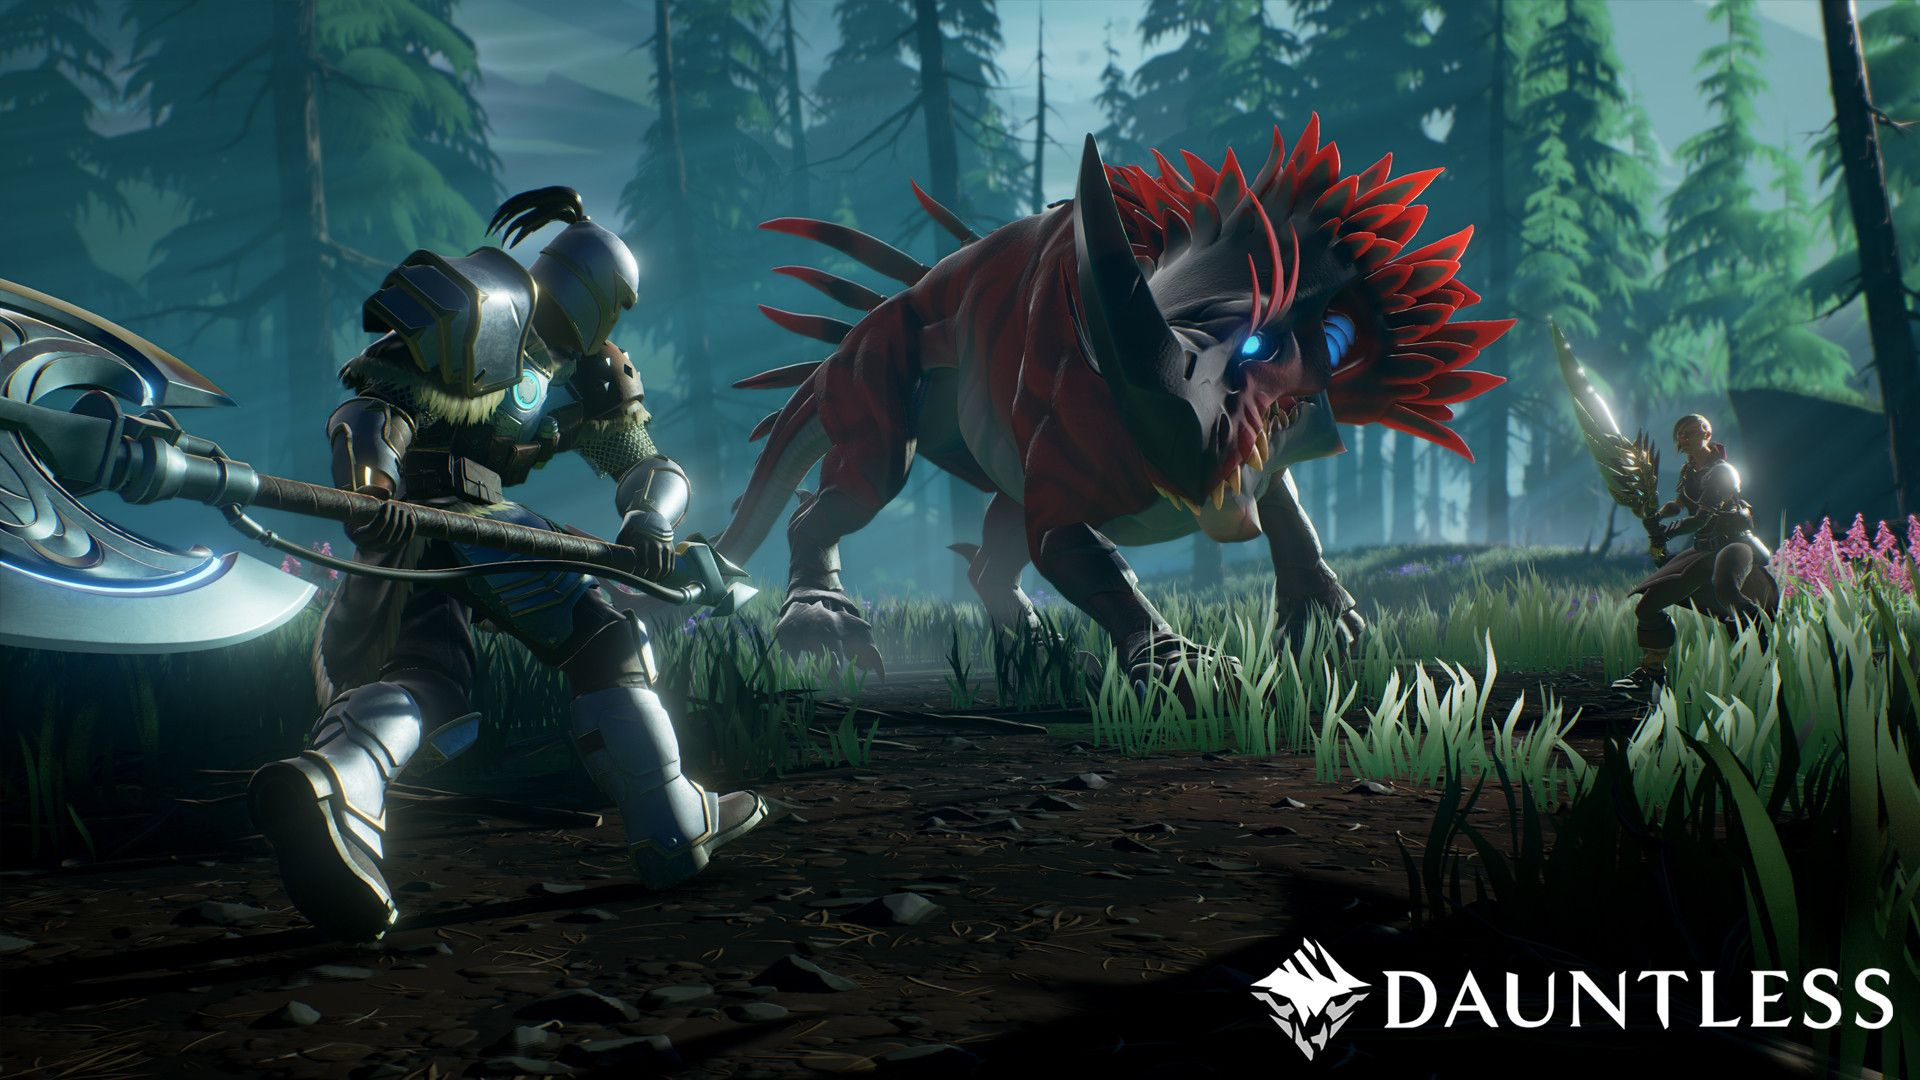 Dauntless's open beta attracts over 1 million monster